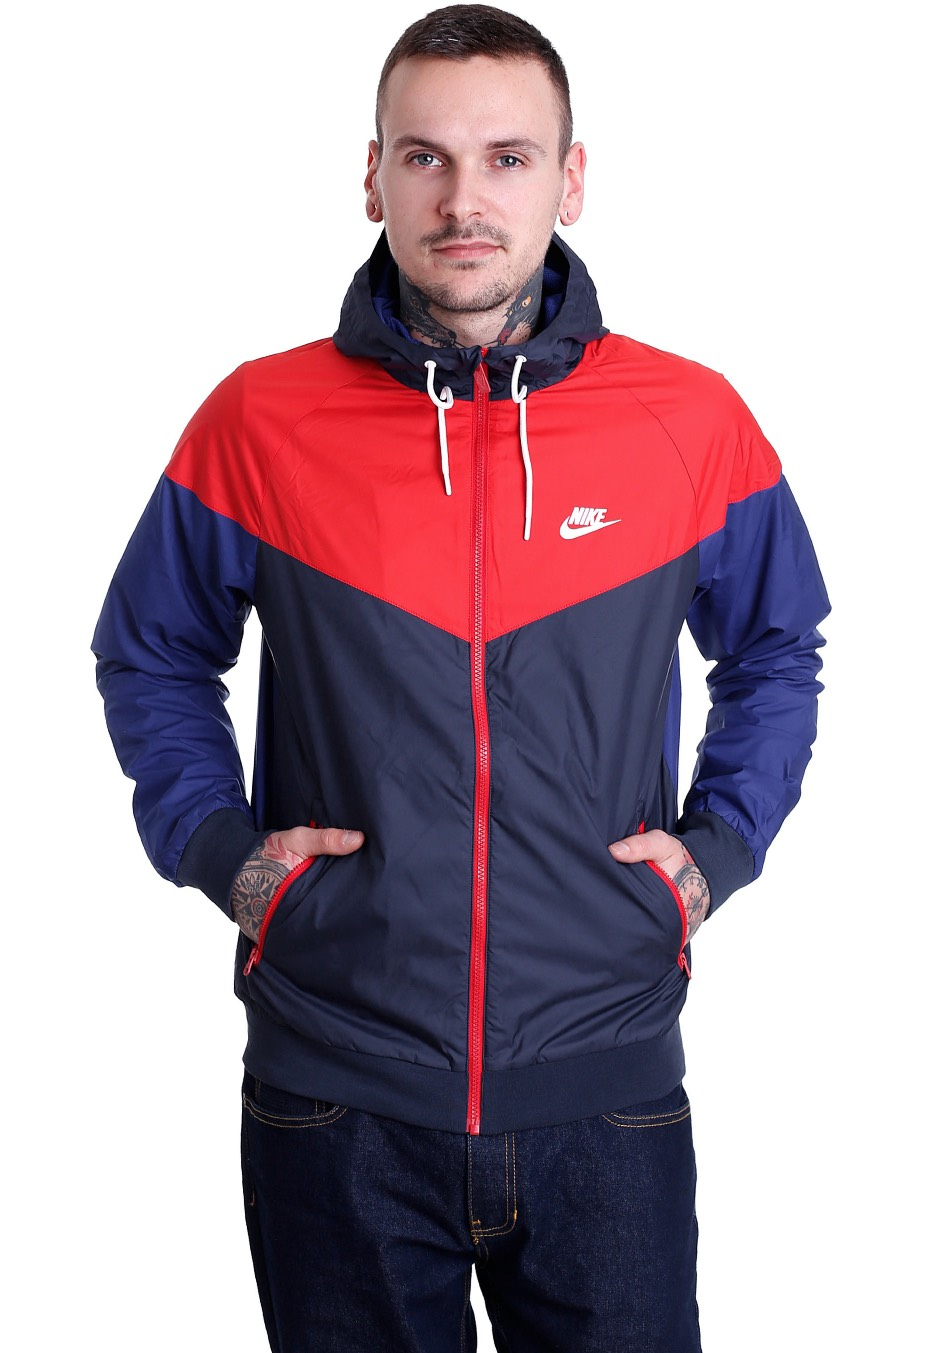 815b37e83ade Nike - Windrunner Obsidian University Red White - Windbreaker - Streetwear  Shop - Impericon.com US